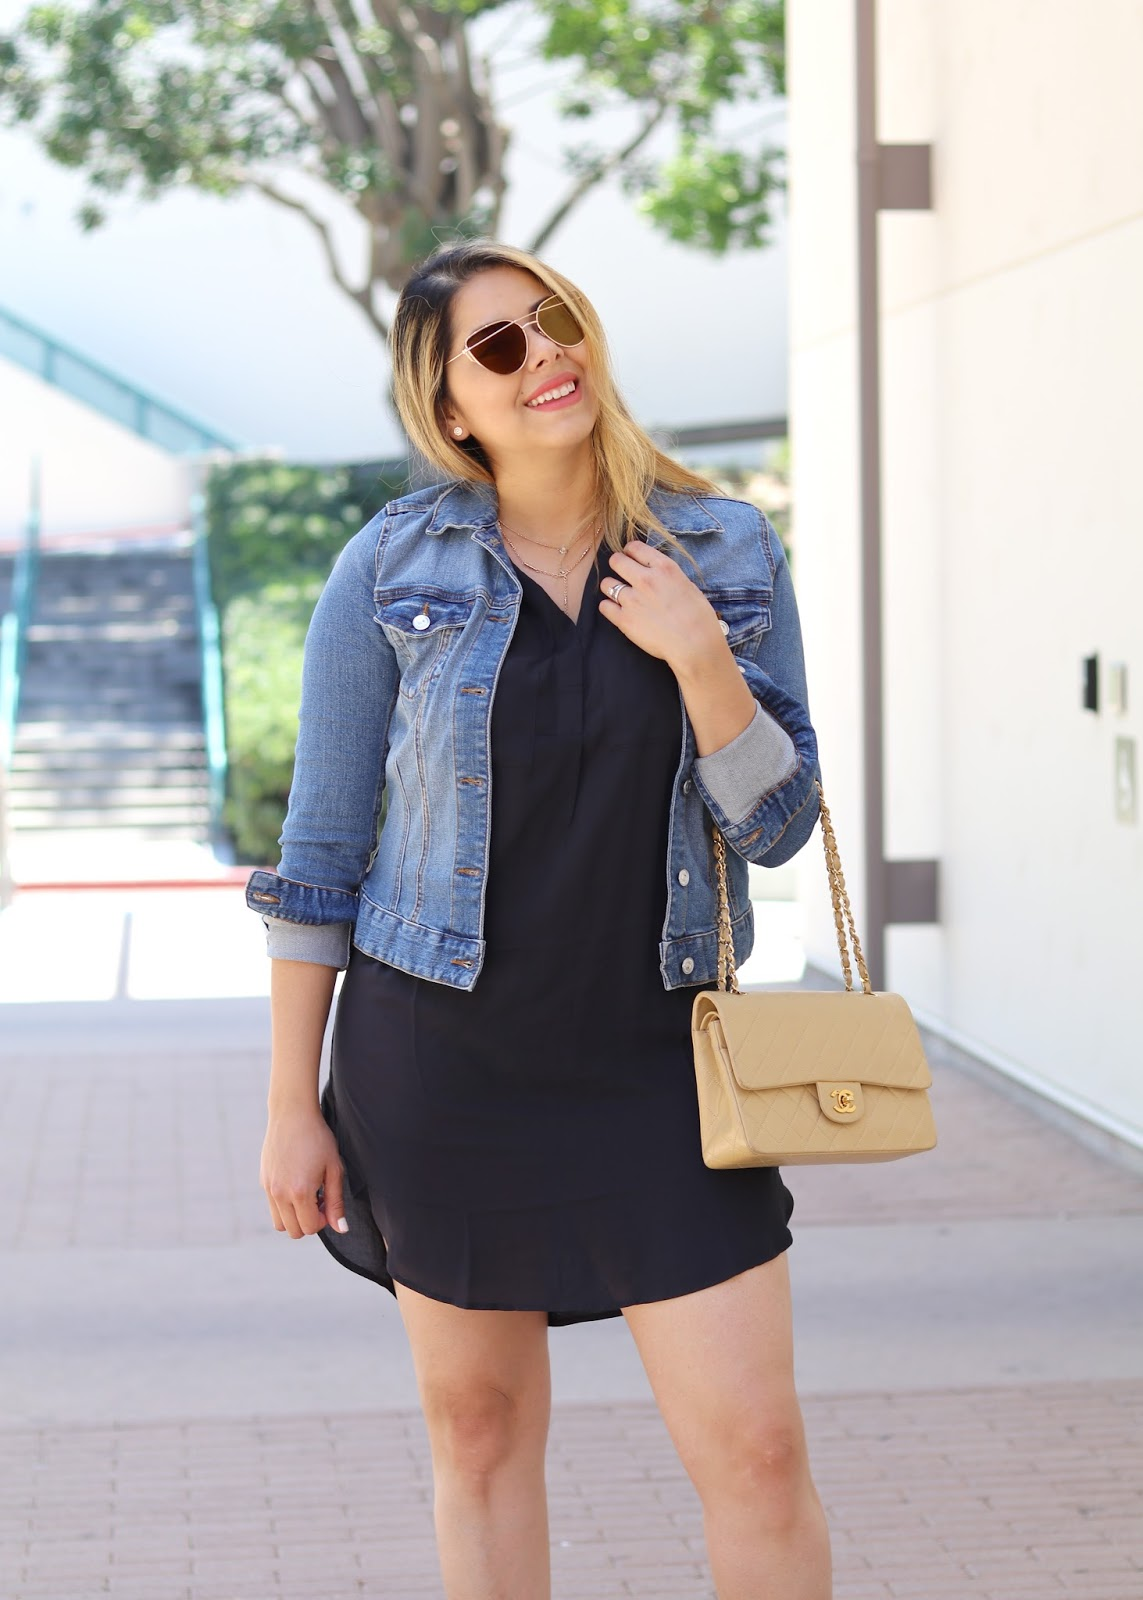 H&M outfit, H&M black shirtdress, how to wear a black shirtdress, summer 2016 lookbook